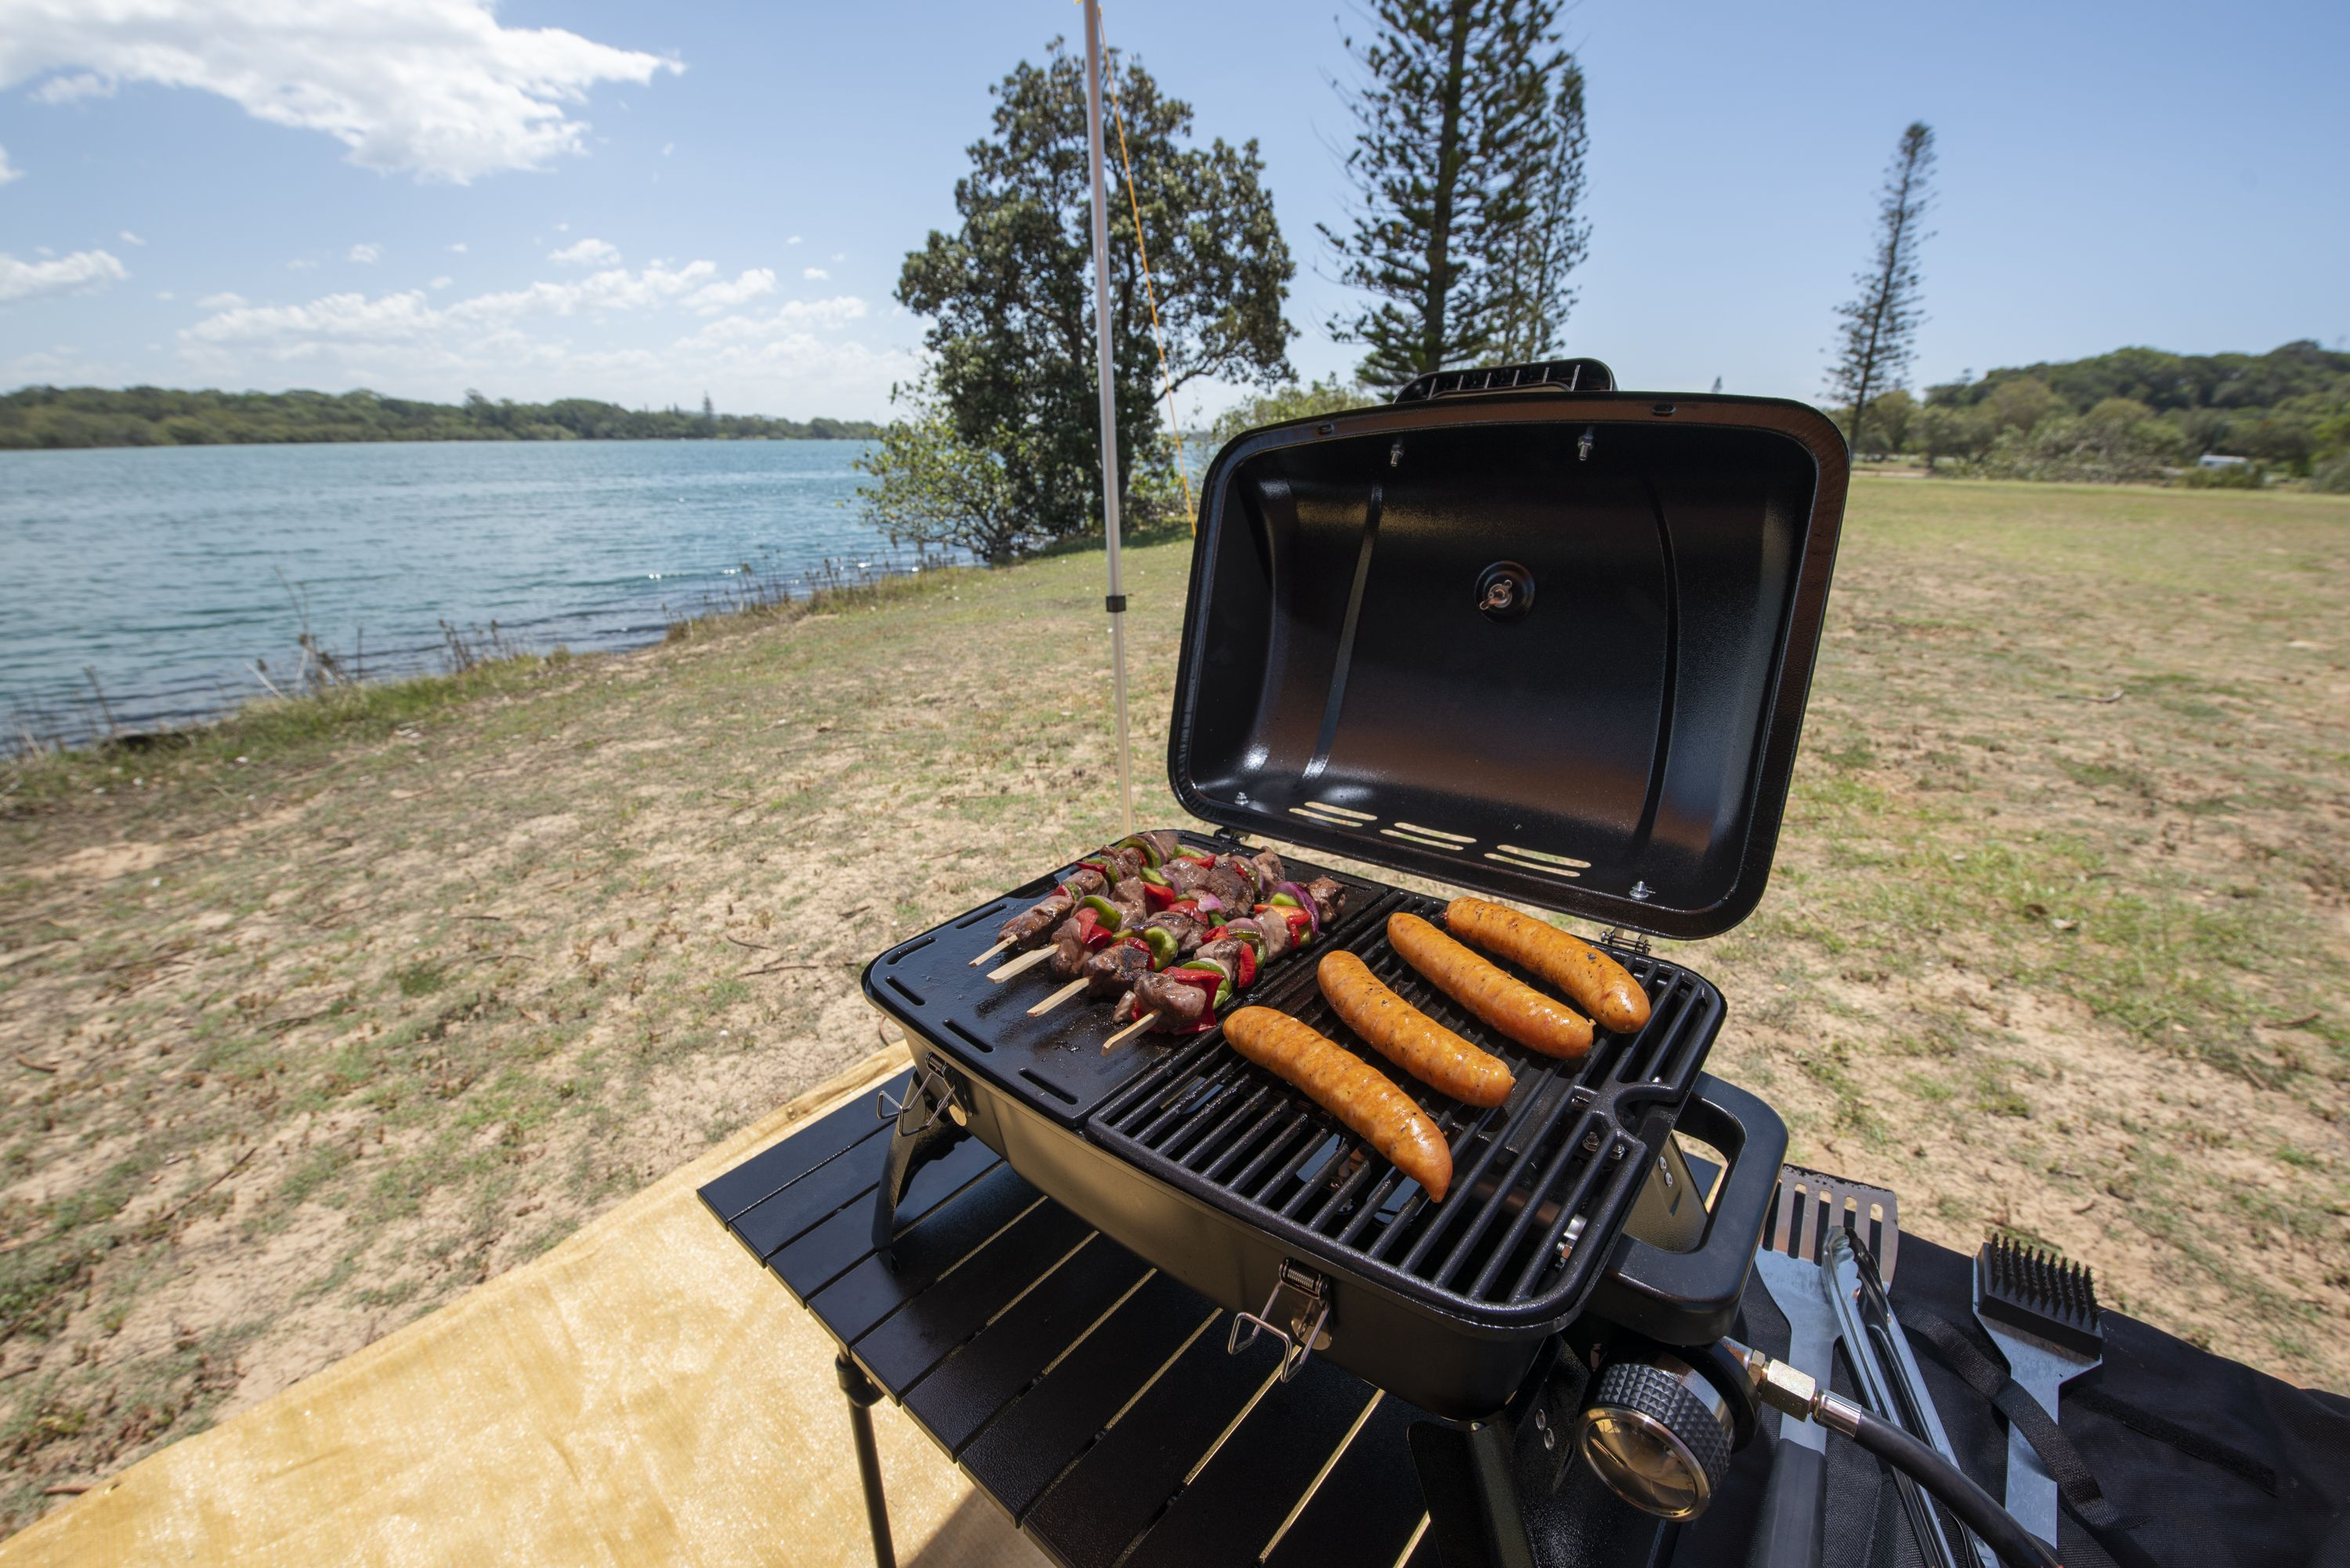 Gasmate Voyager Portable Gas Bbq Review gasmate voyager portable gas bbq | temp gauge | hotplate